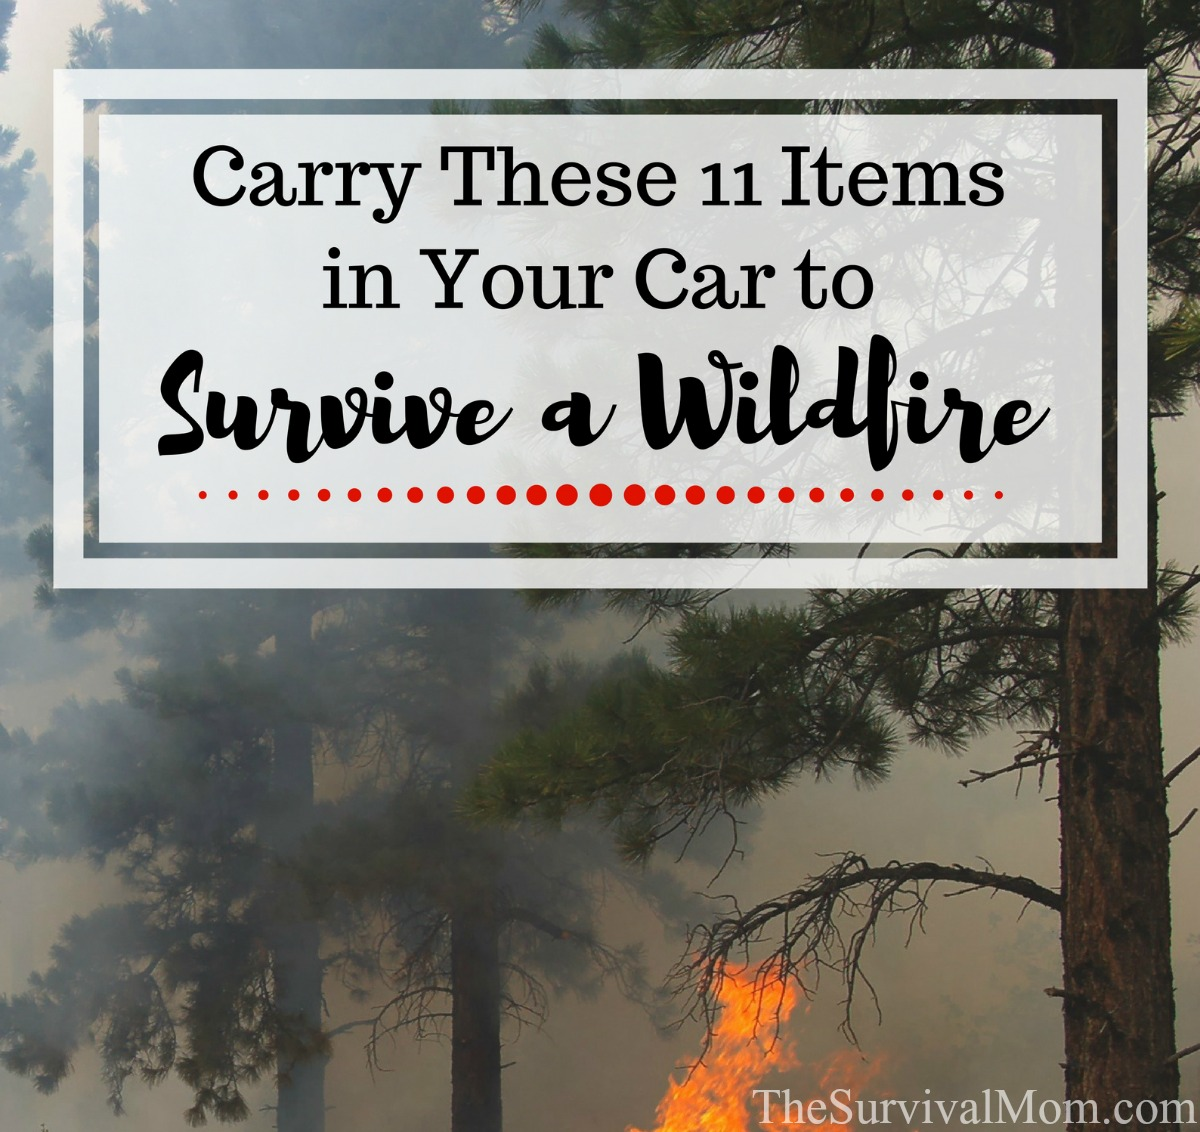 items-in-car-survive-wildfire-2